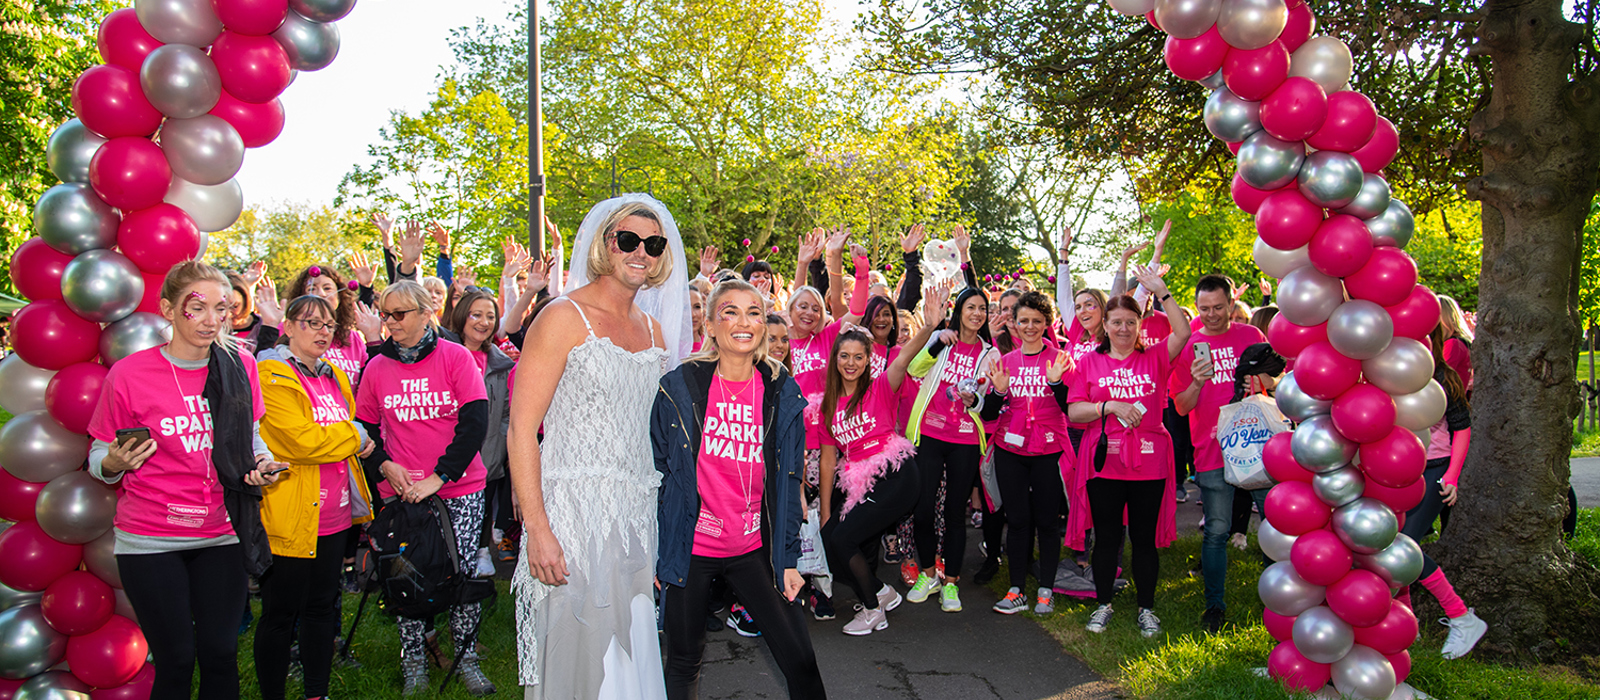 300 supporters Sparkle for hospice